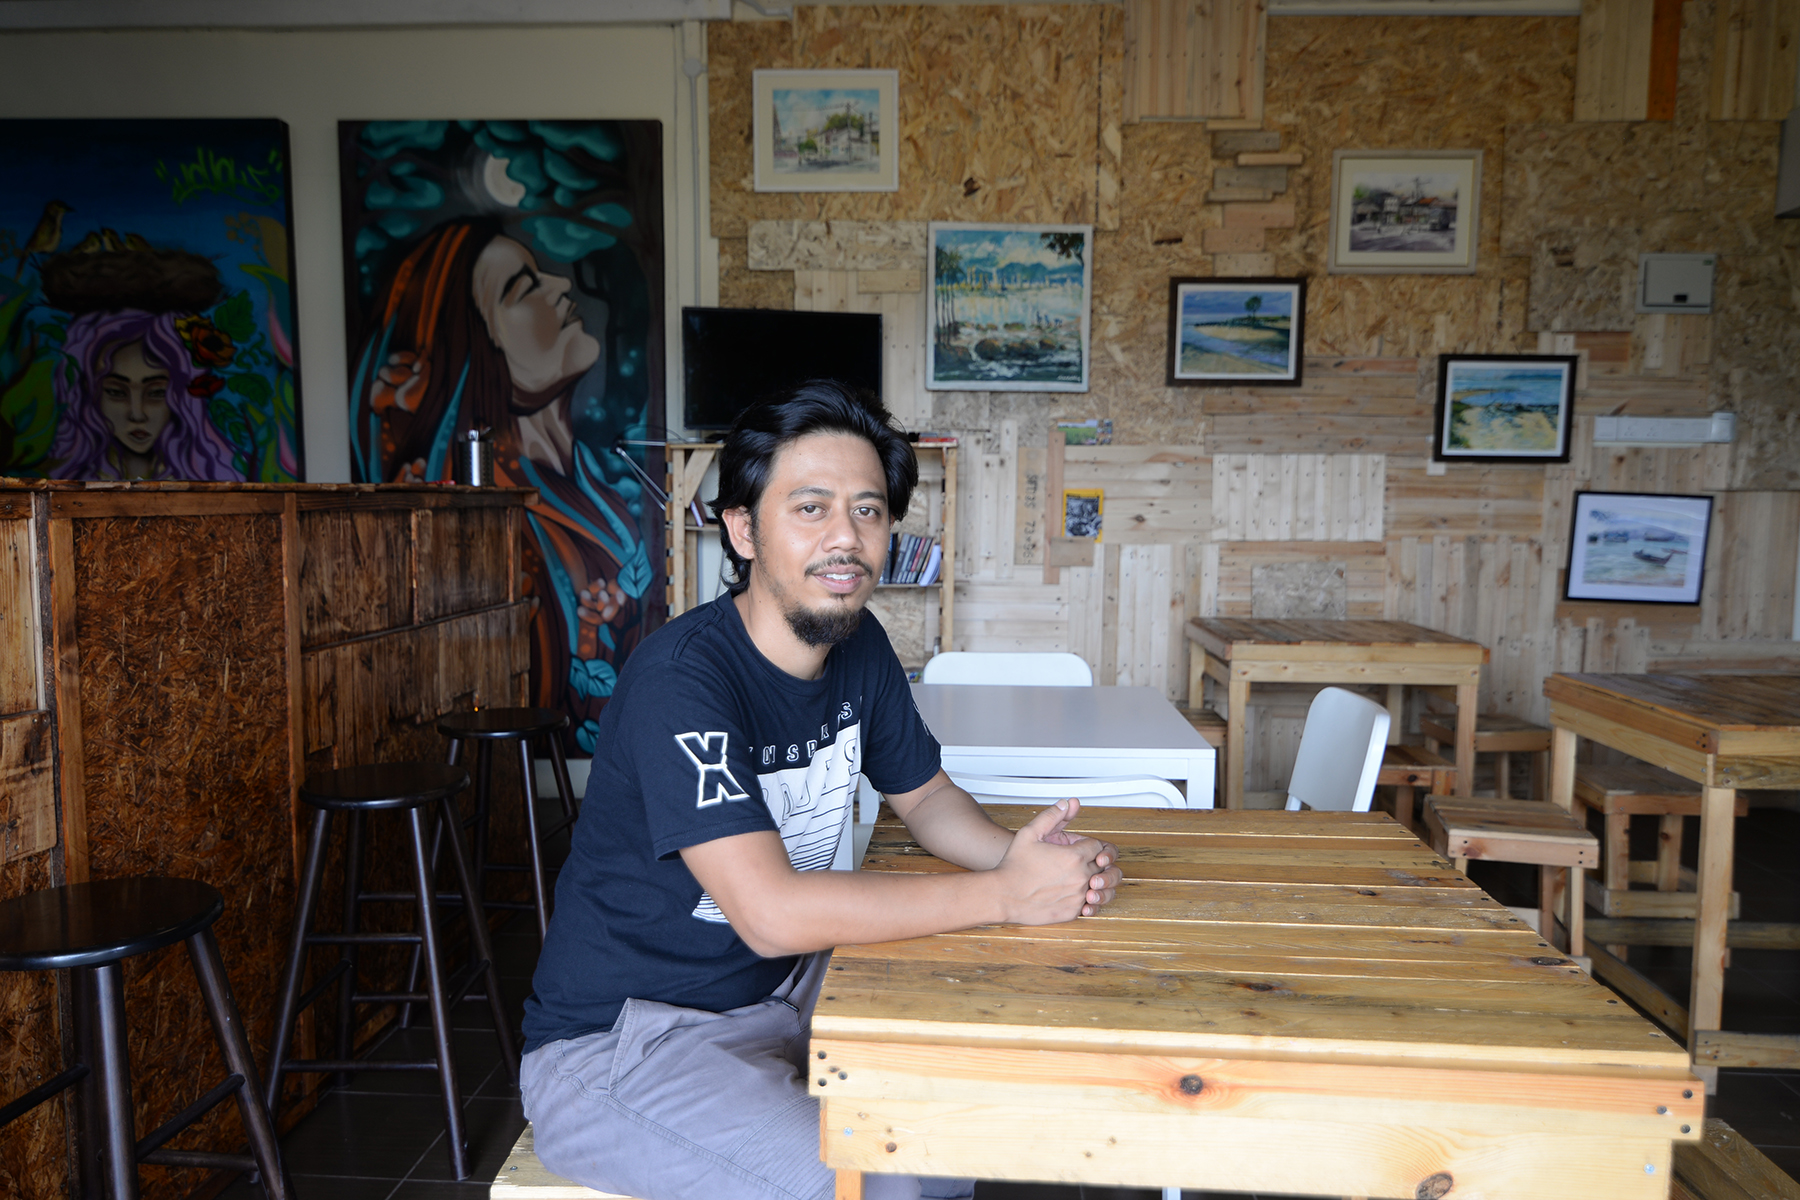 Hafidz Adnan at Lokalhouz, a new events and art space in Butterworth. — Picture by K.E. Ooi